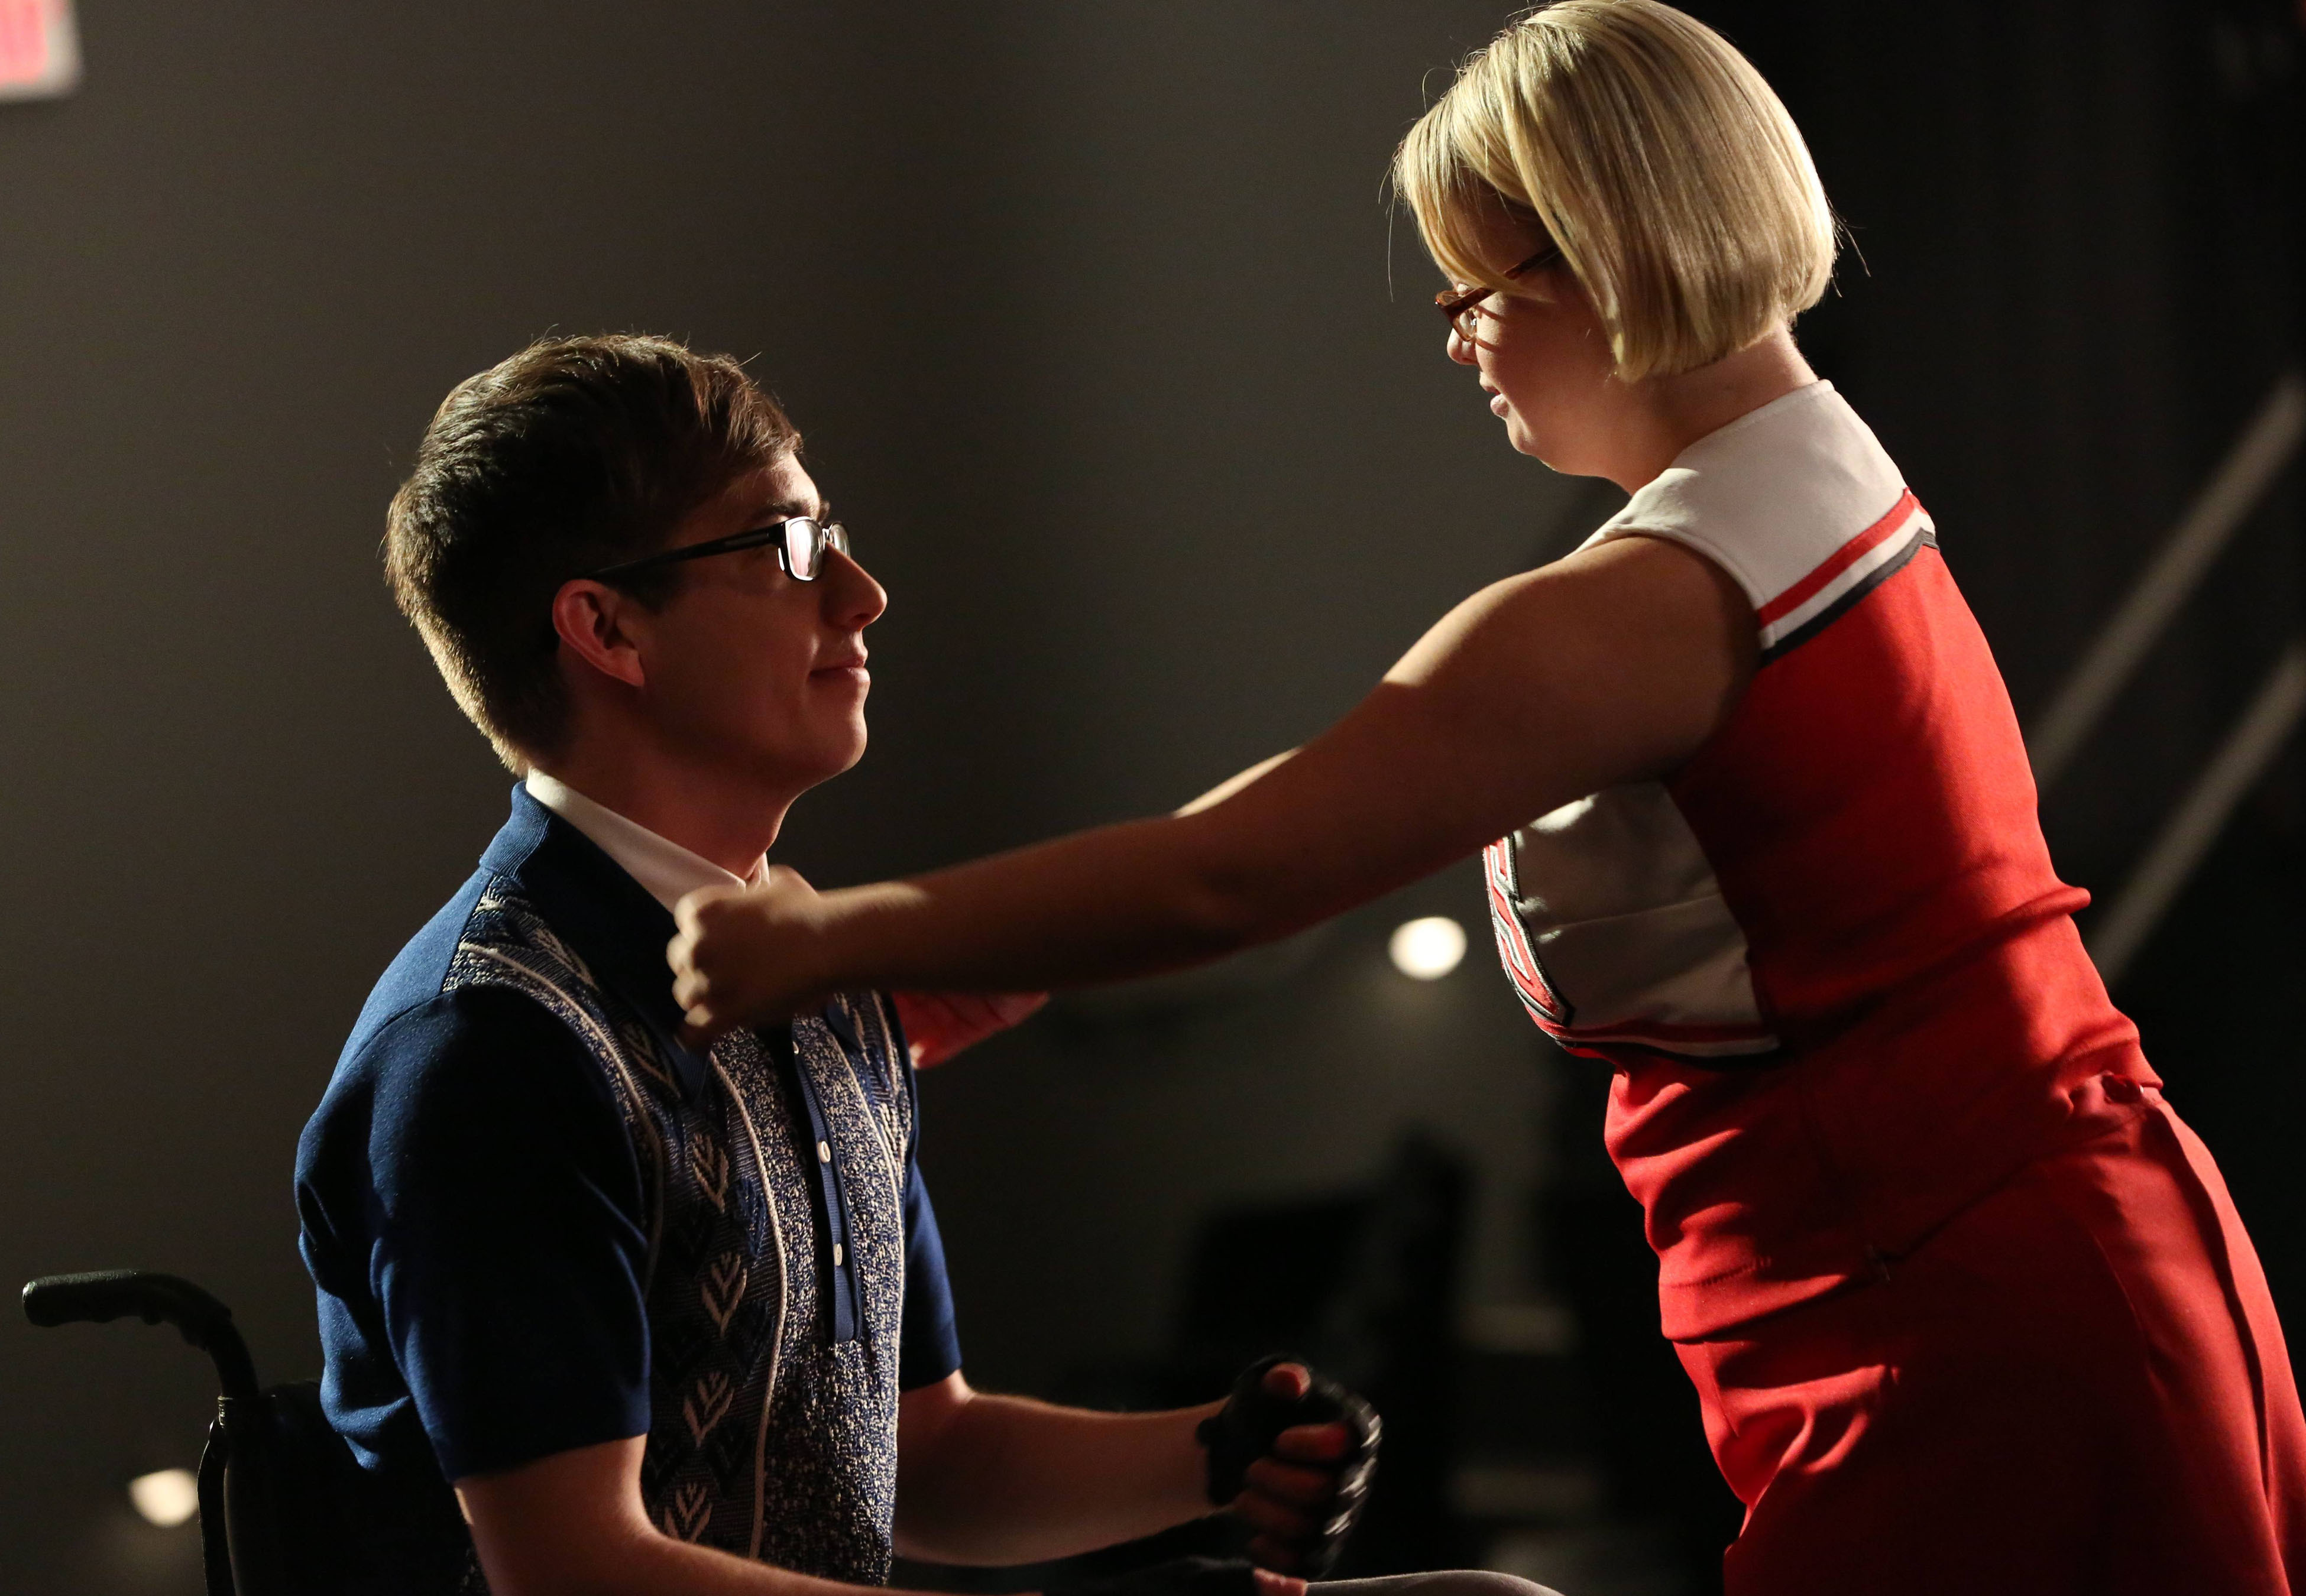 When do Brittney and Artie start dating in glee